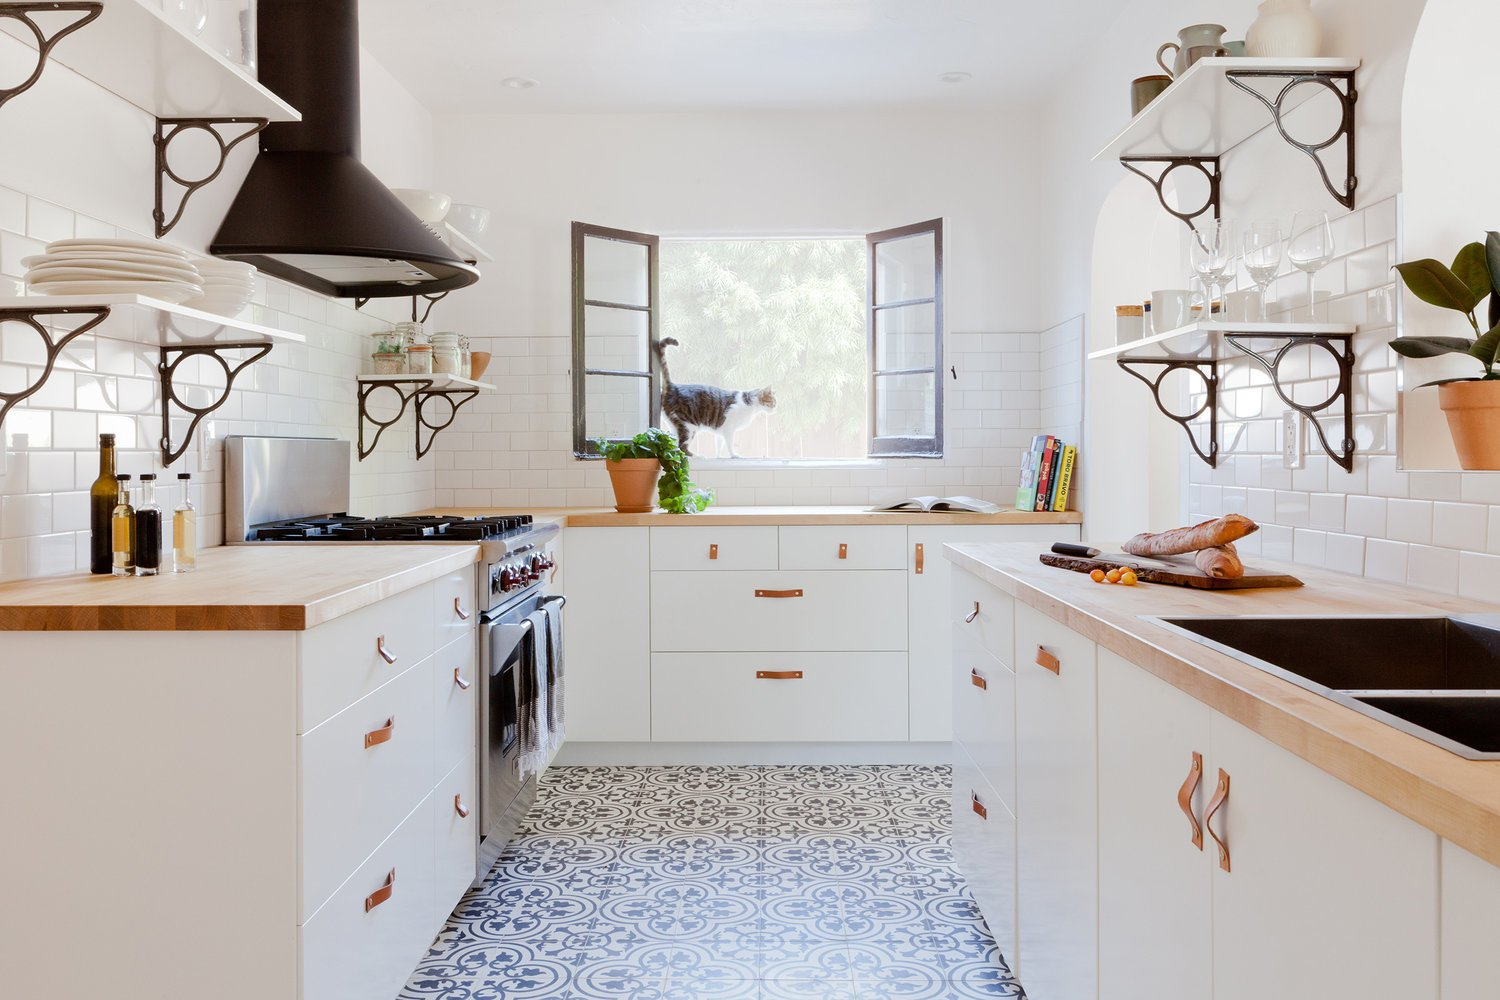 Kitchen, Wood, Subway Tile, Drop In, Range, and Ceramic Tile  Kitchen Range Subway Tile Ceramic Tile Photos from Ole Hanson Duplex